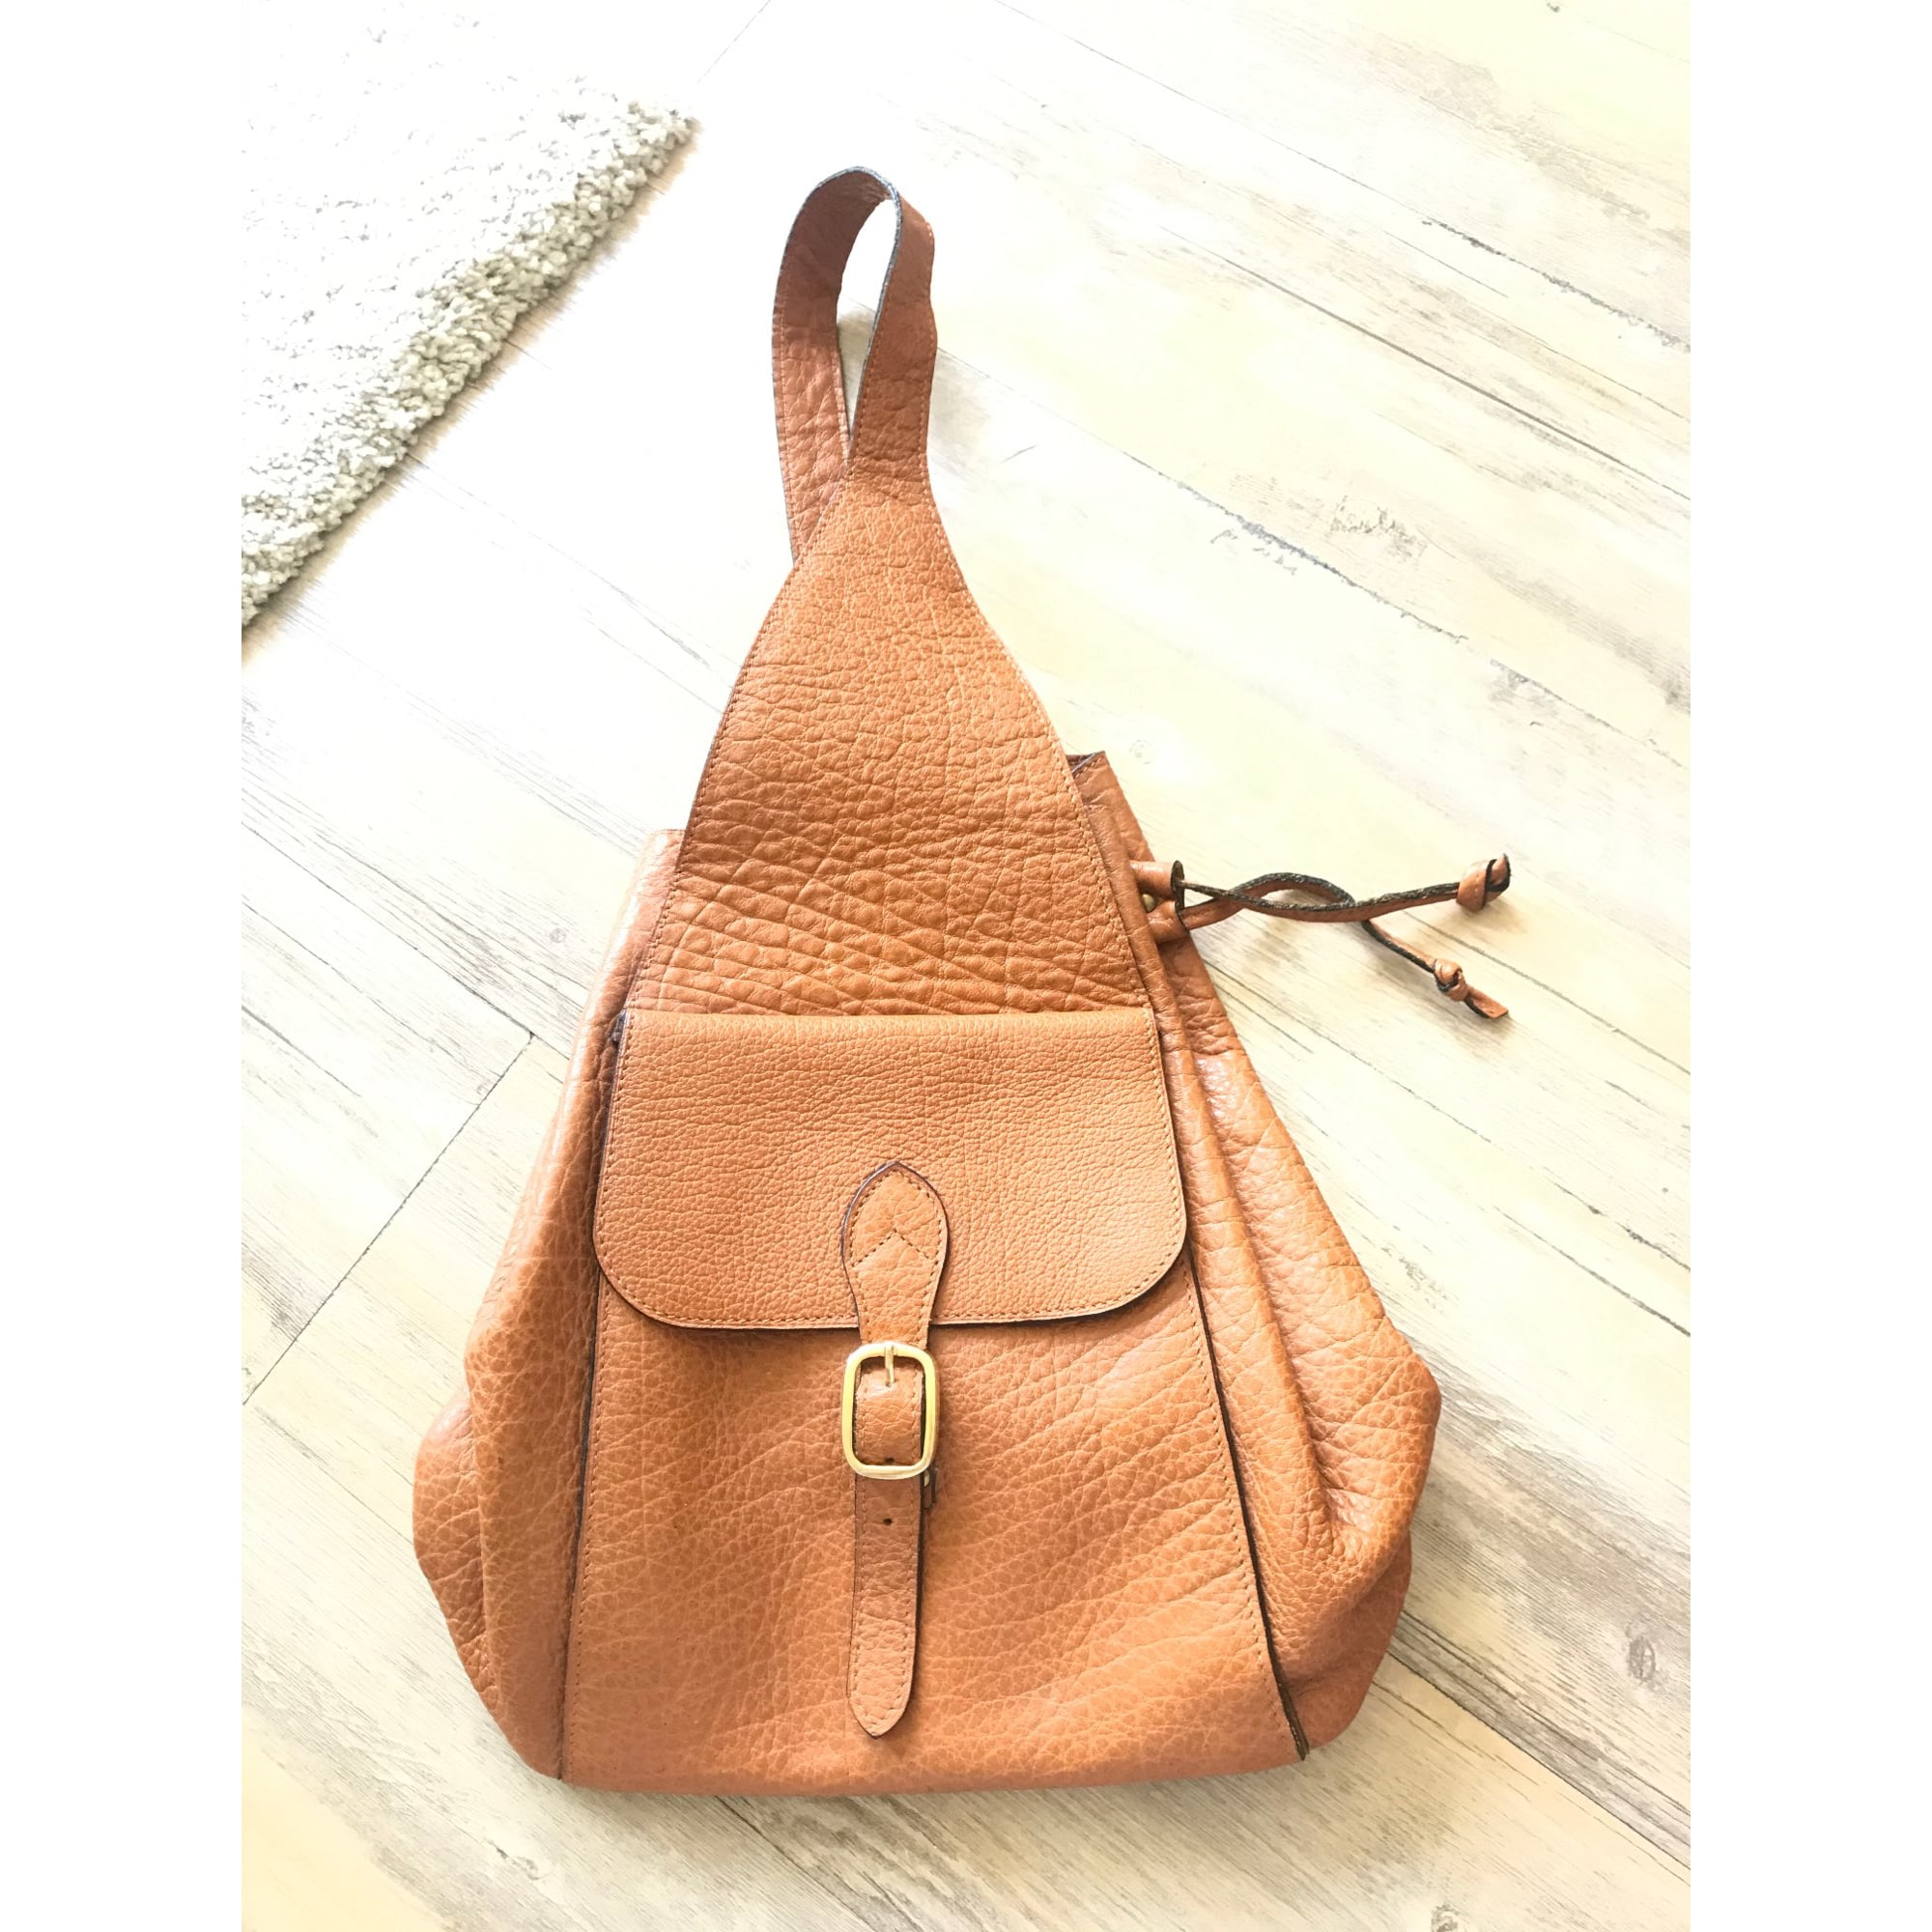 Backpack MARQUE INCONNUE Brown